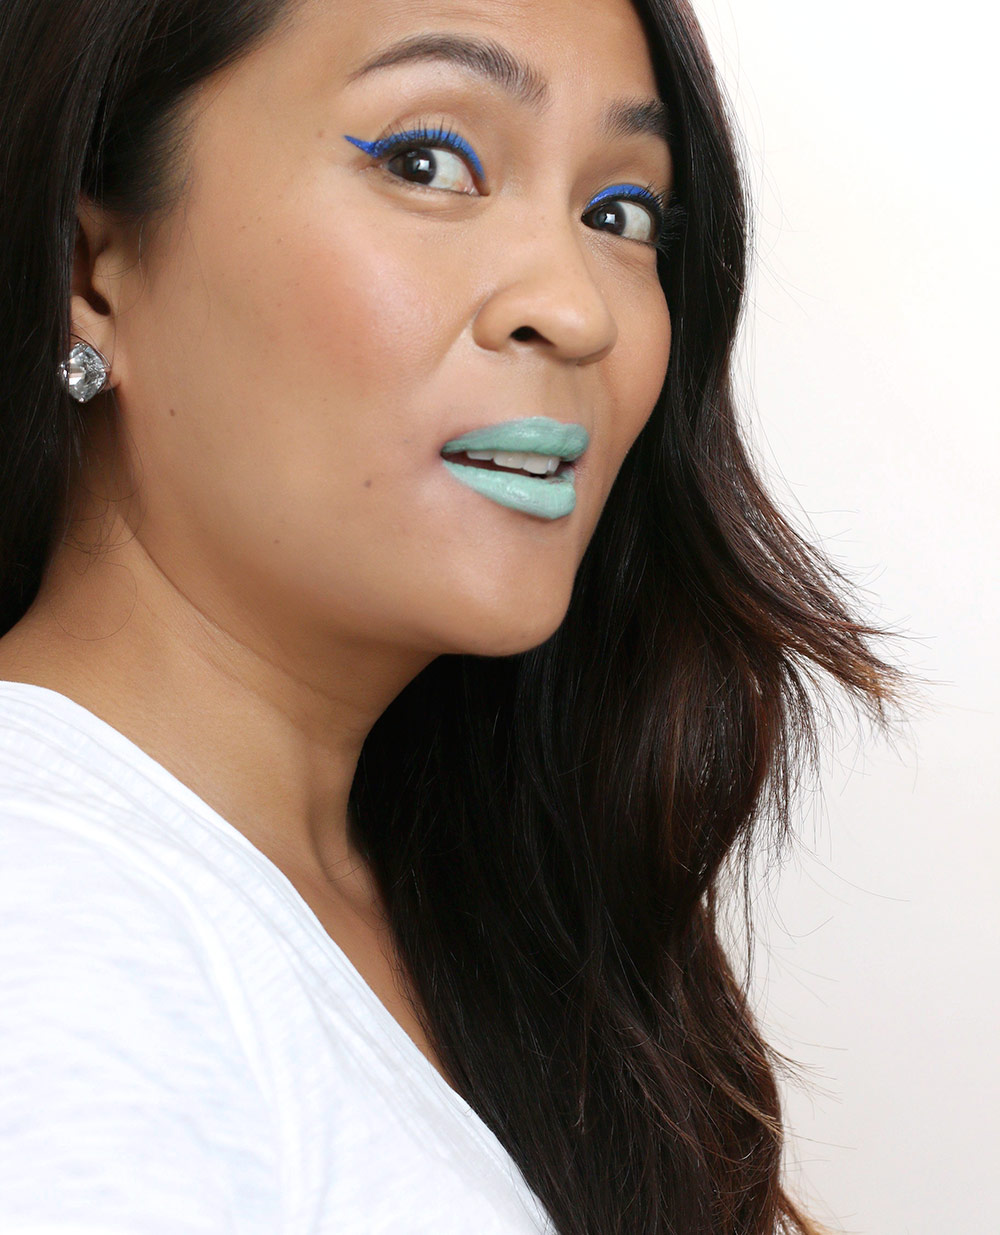 Feeling slightly crazy with a side of cray in this mint green lipstick by Make Up For Ever